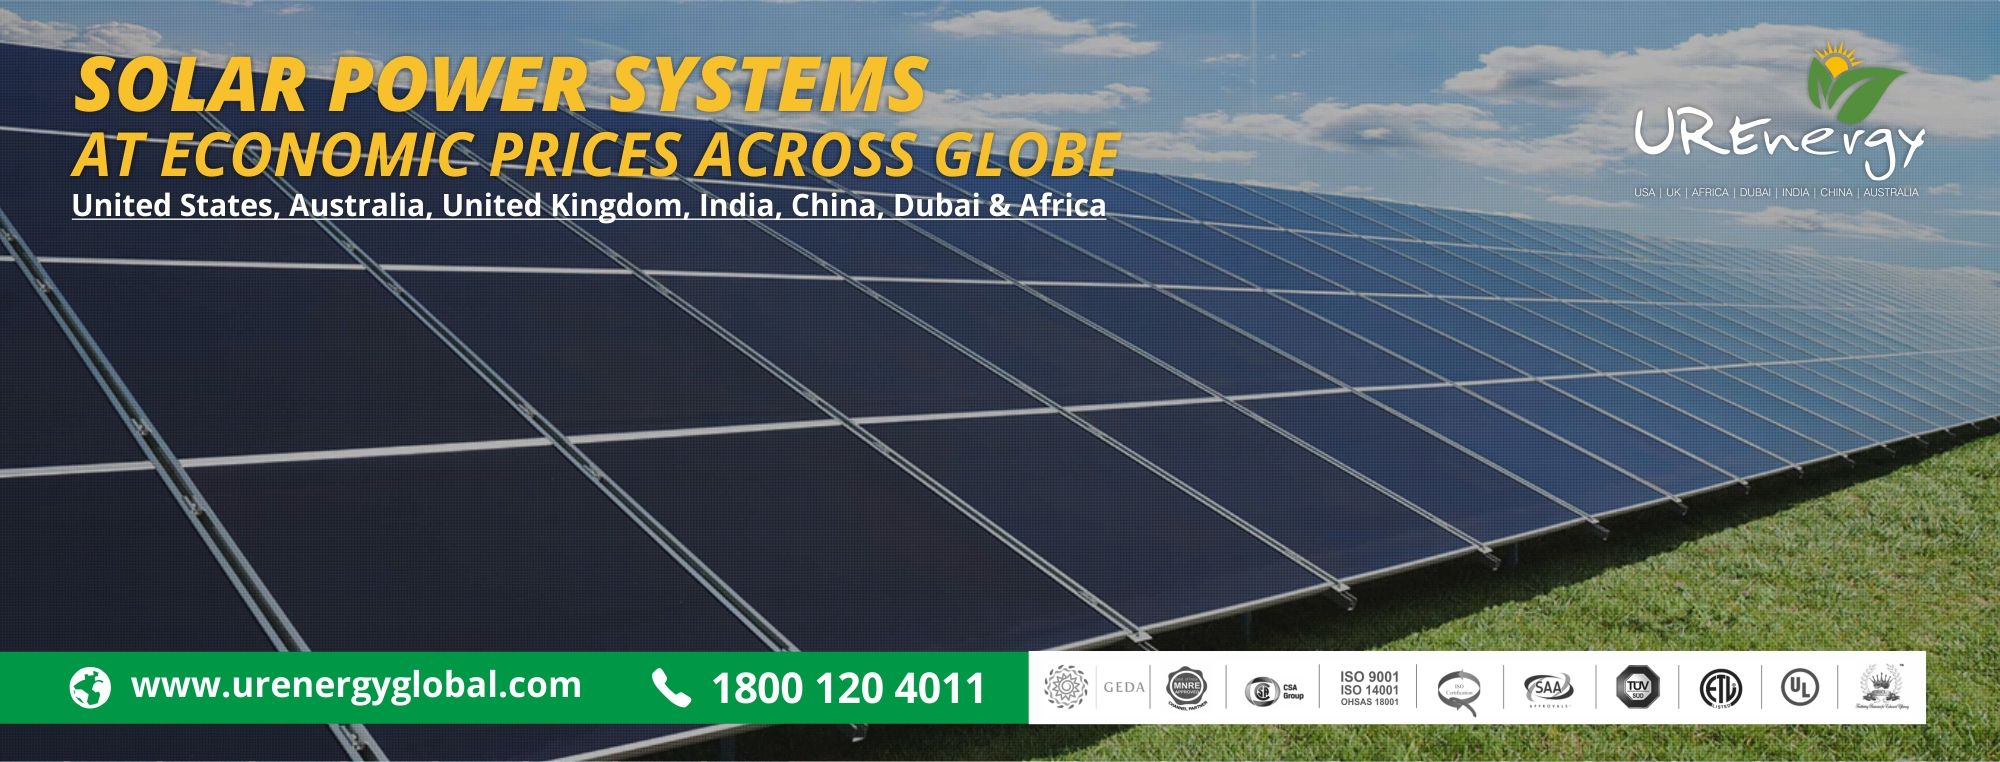 Pin By U R Energy On U R Energy Solar Power System Roof Solar Panel Solar